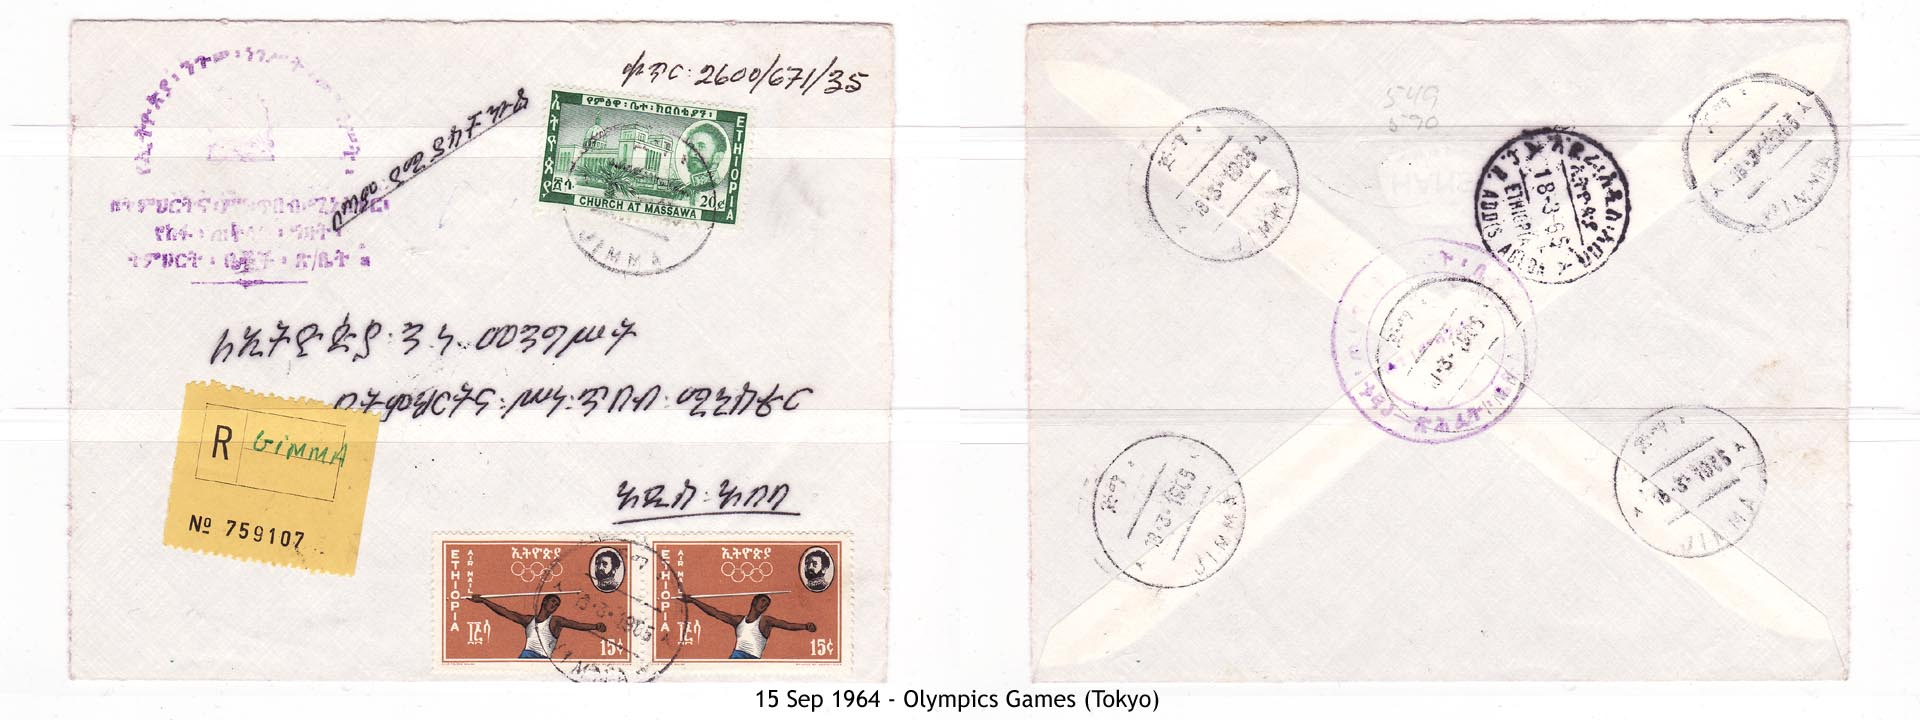 19640915 – Olympics Games (Tokyo)